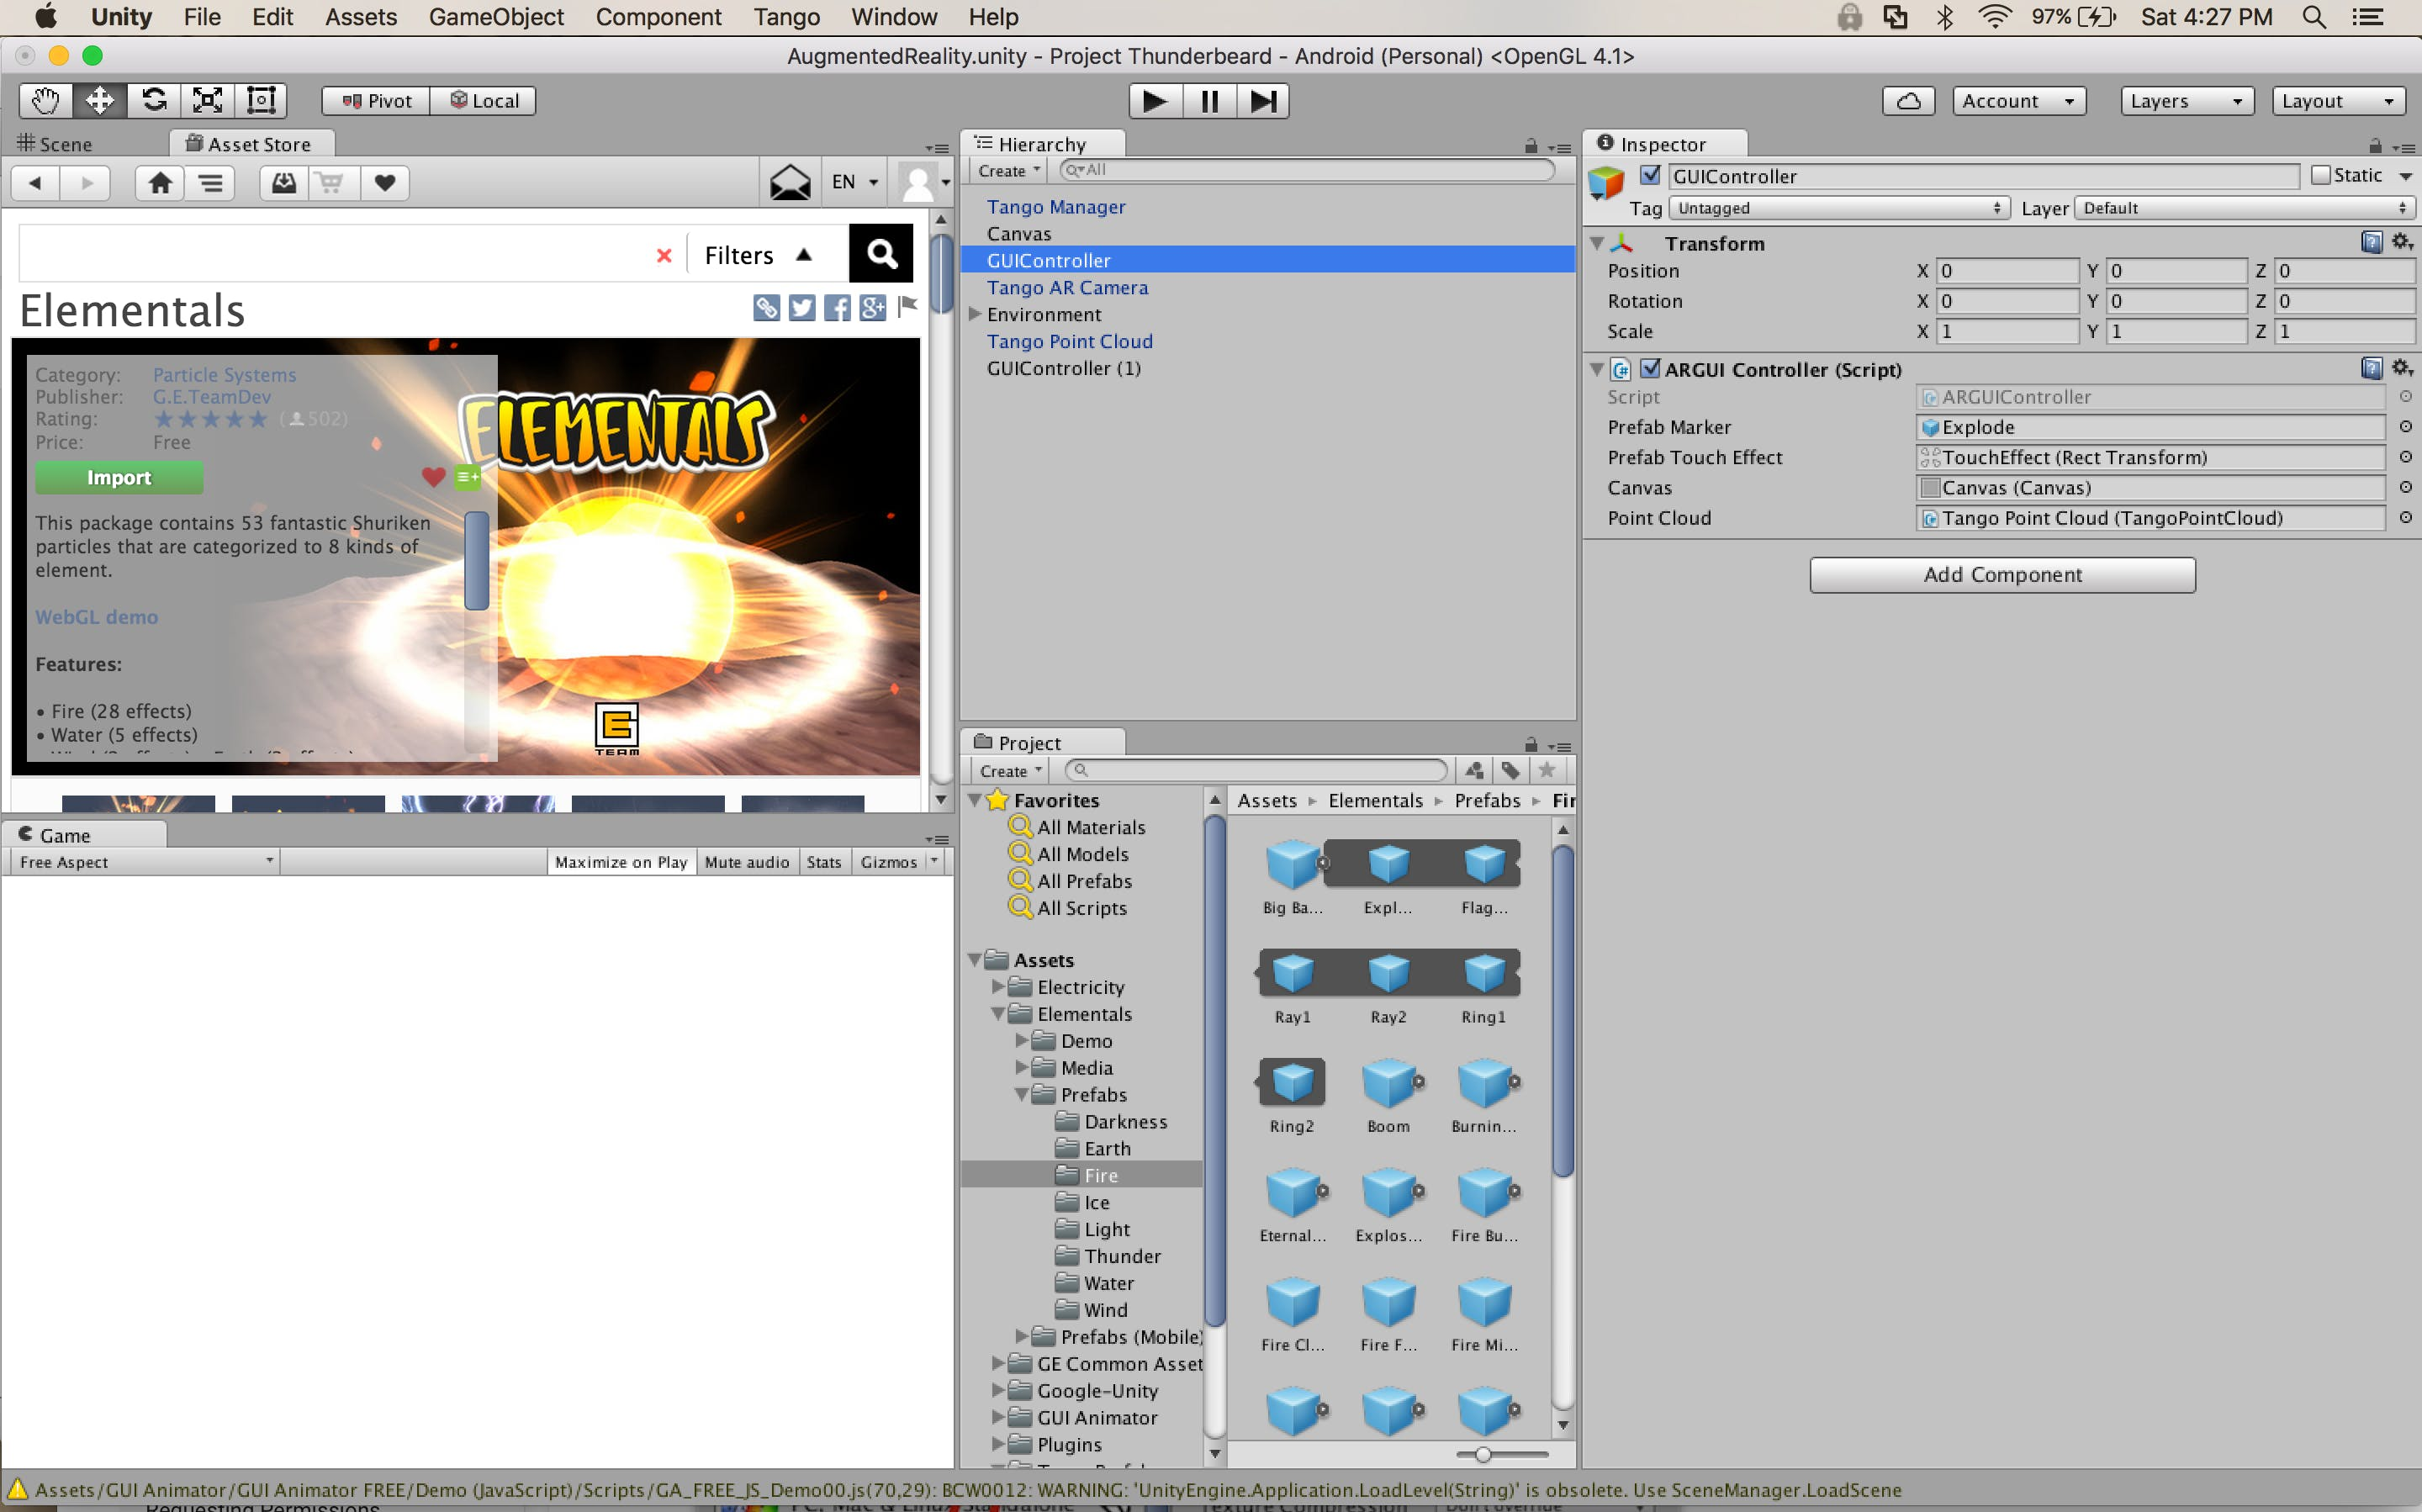 Image 3 Displays the Unity3D interface with the selected assets